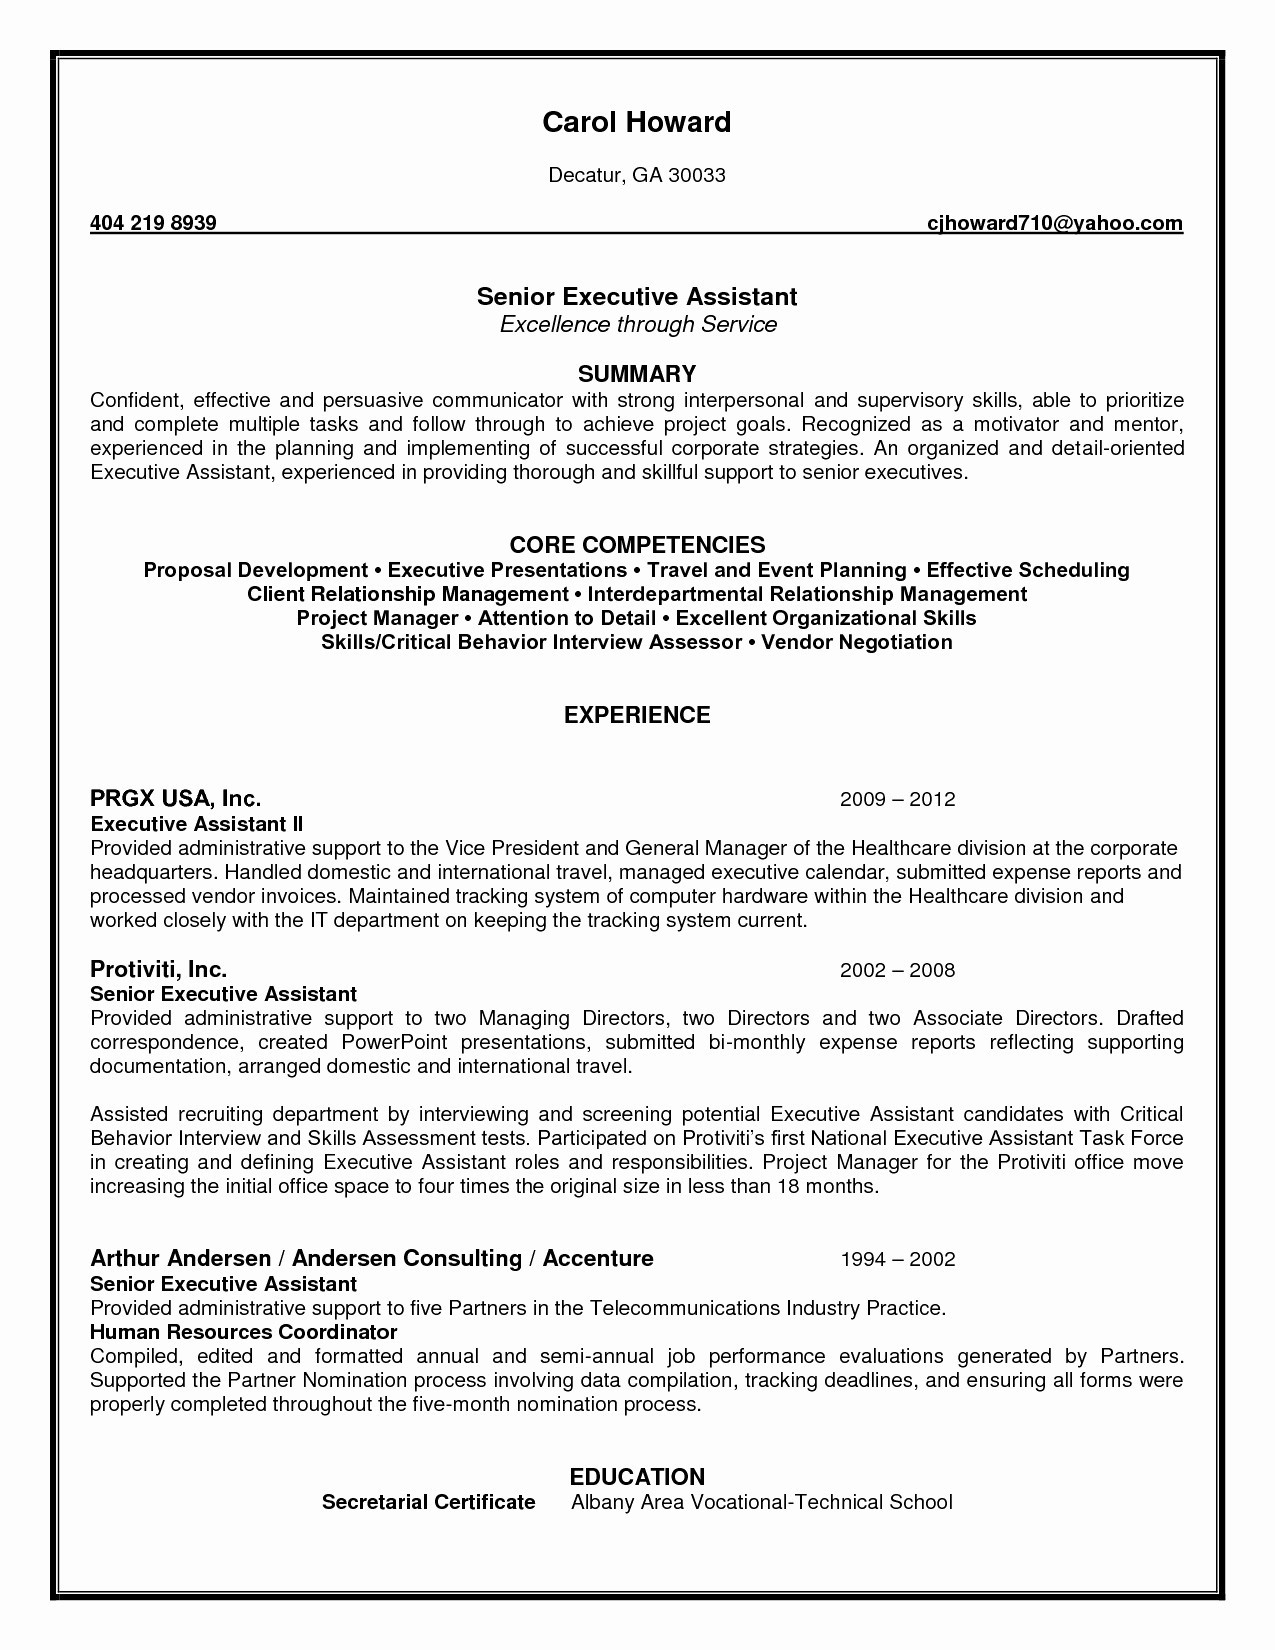 Sales Manager Resume - Executive assistant Resumes Unique Resume Template Executive